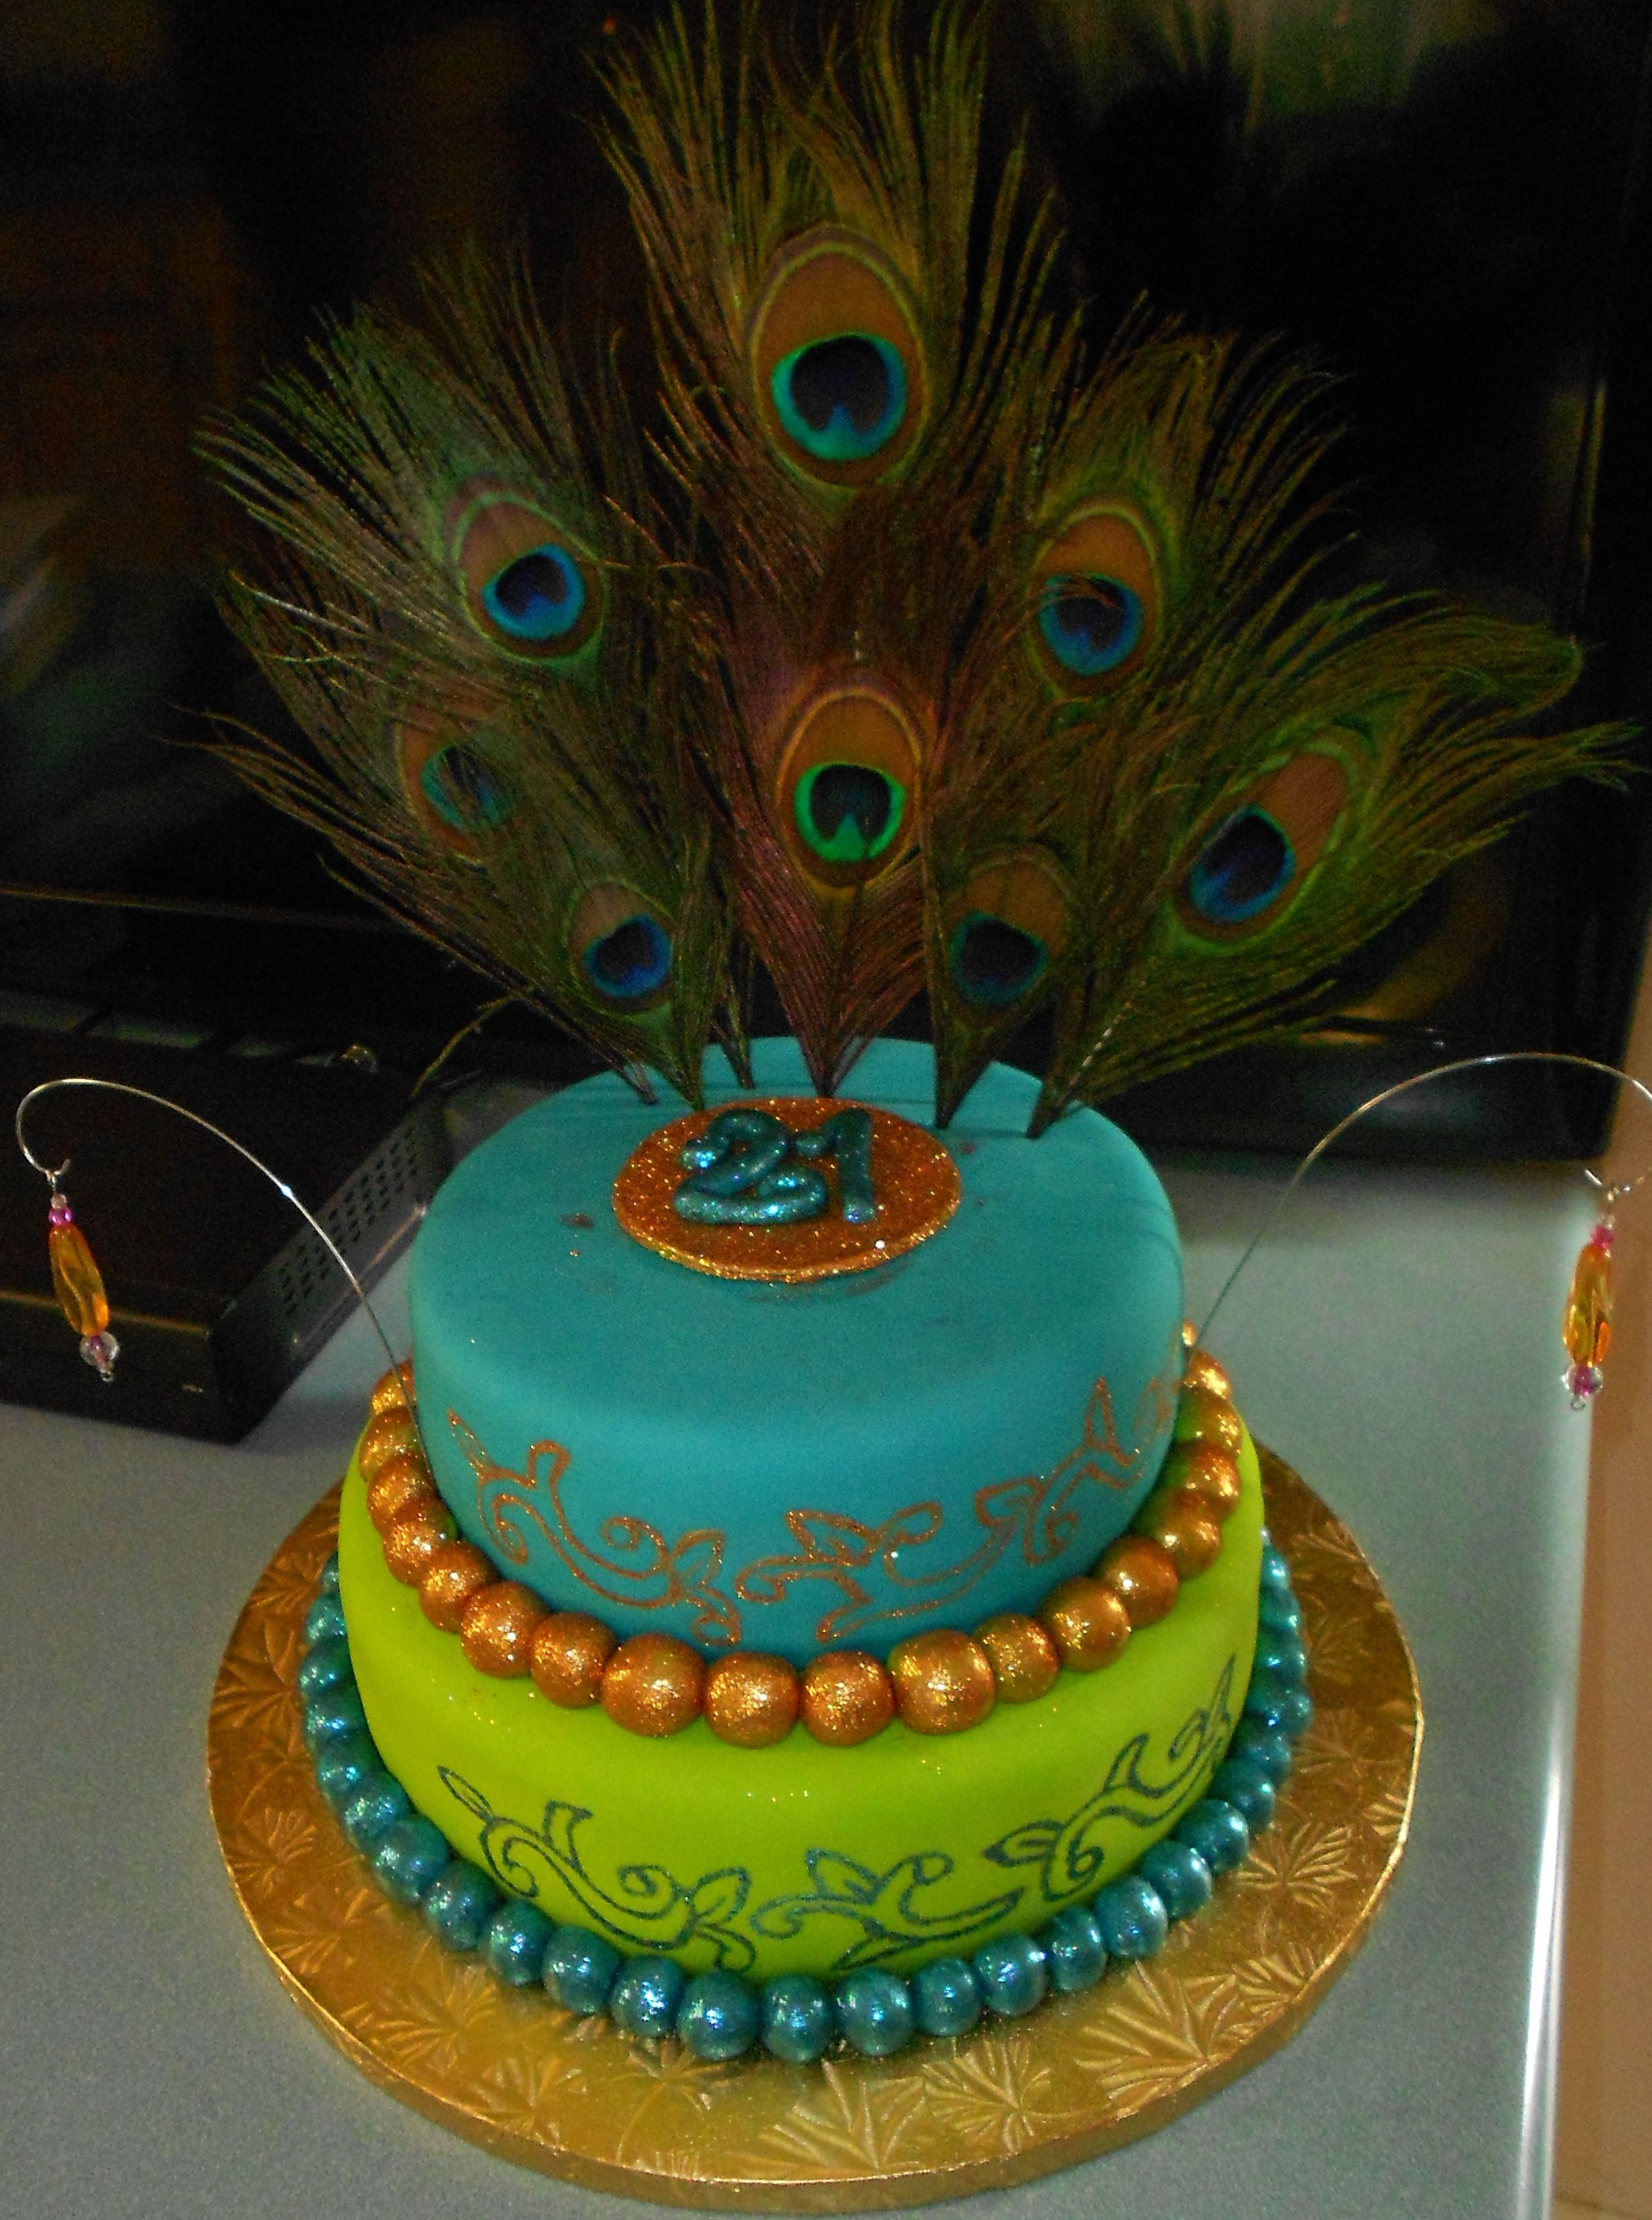 21st Birthday cake for my daughter Peacock feathers Teal and lime